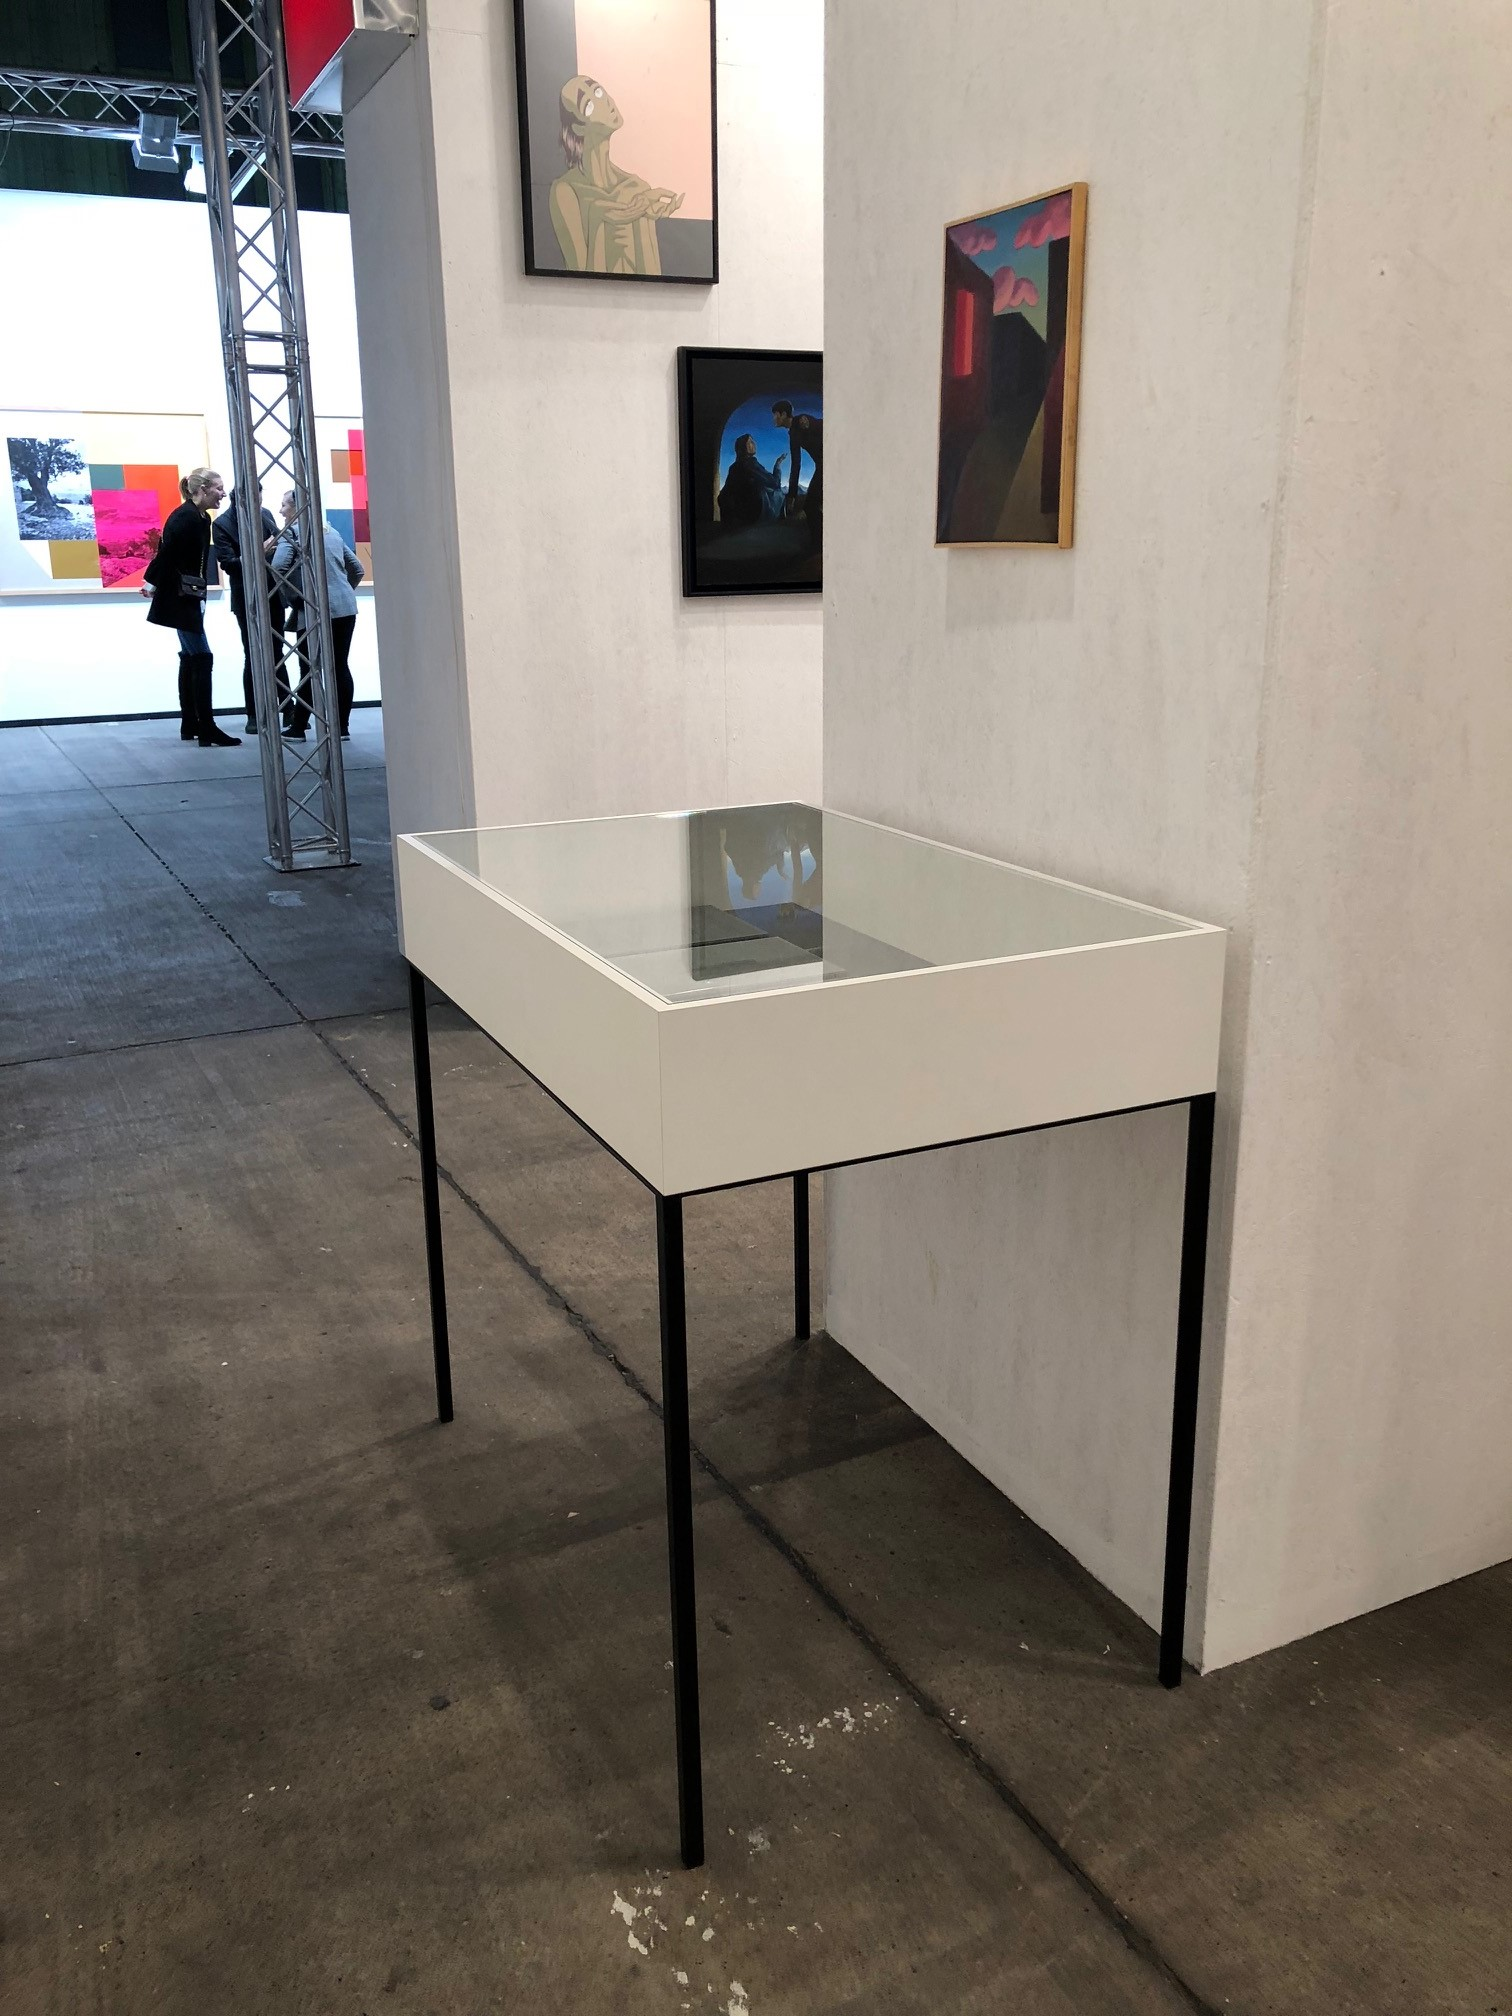 Galleria Fonti Art Berlin 2018 Salon – Constantin Thun